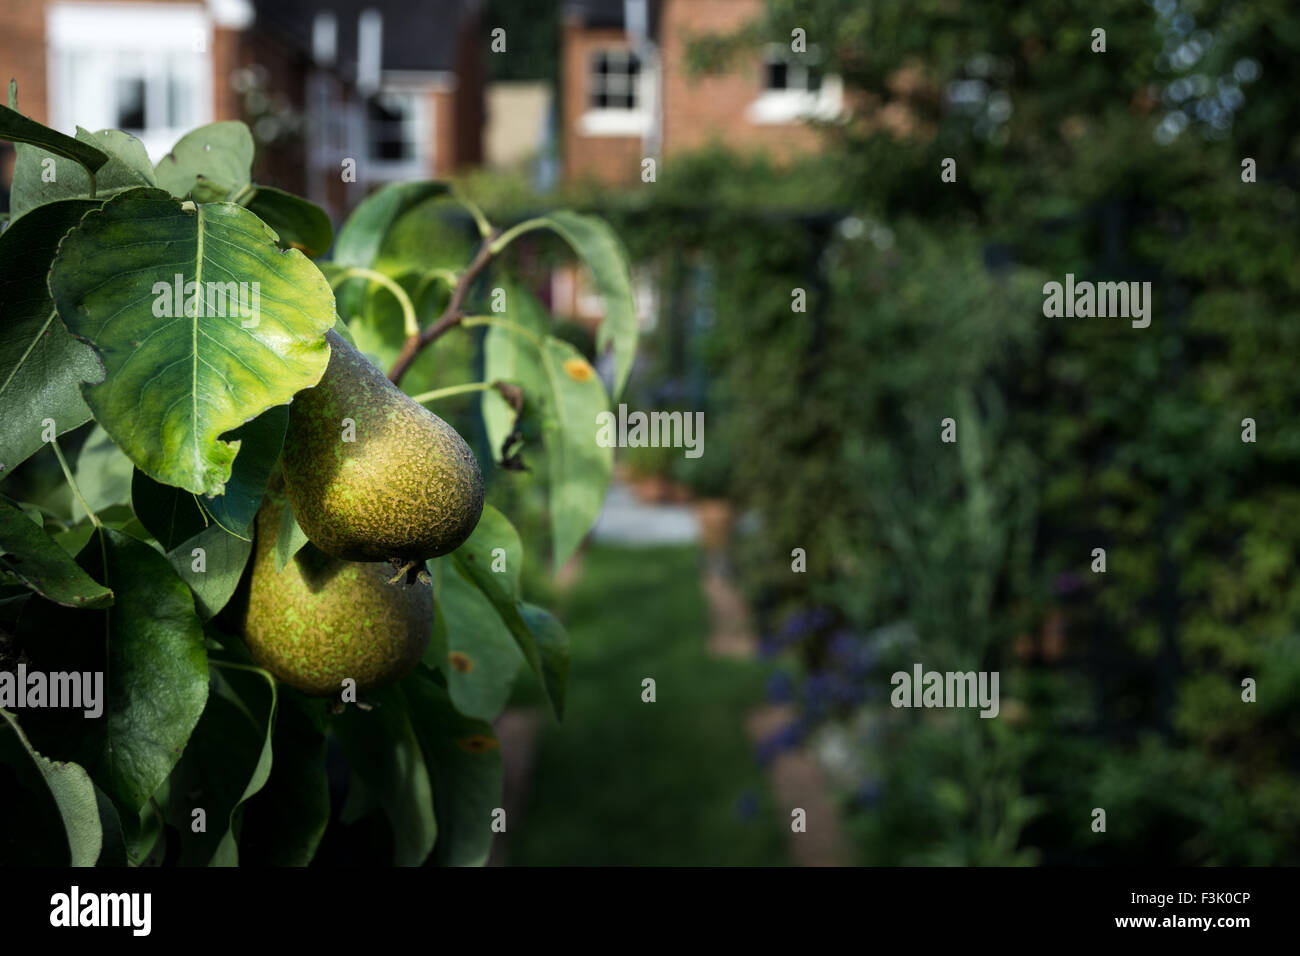 William's pears on a tree in an English Country Garden - Stock Image